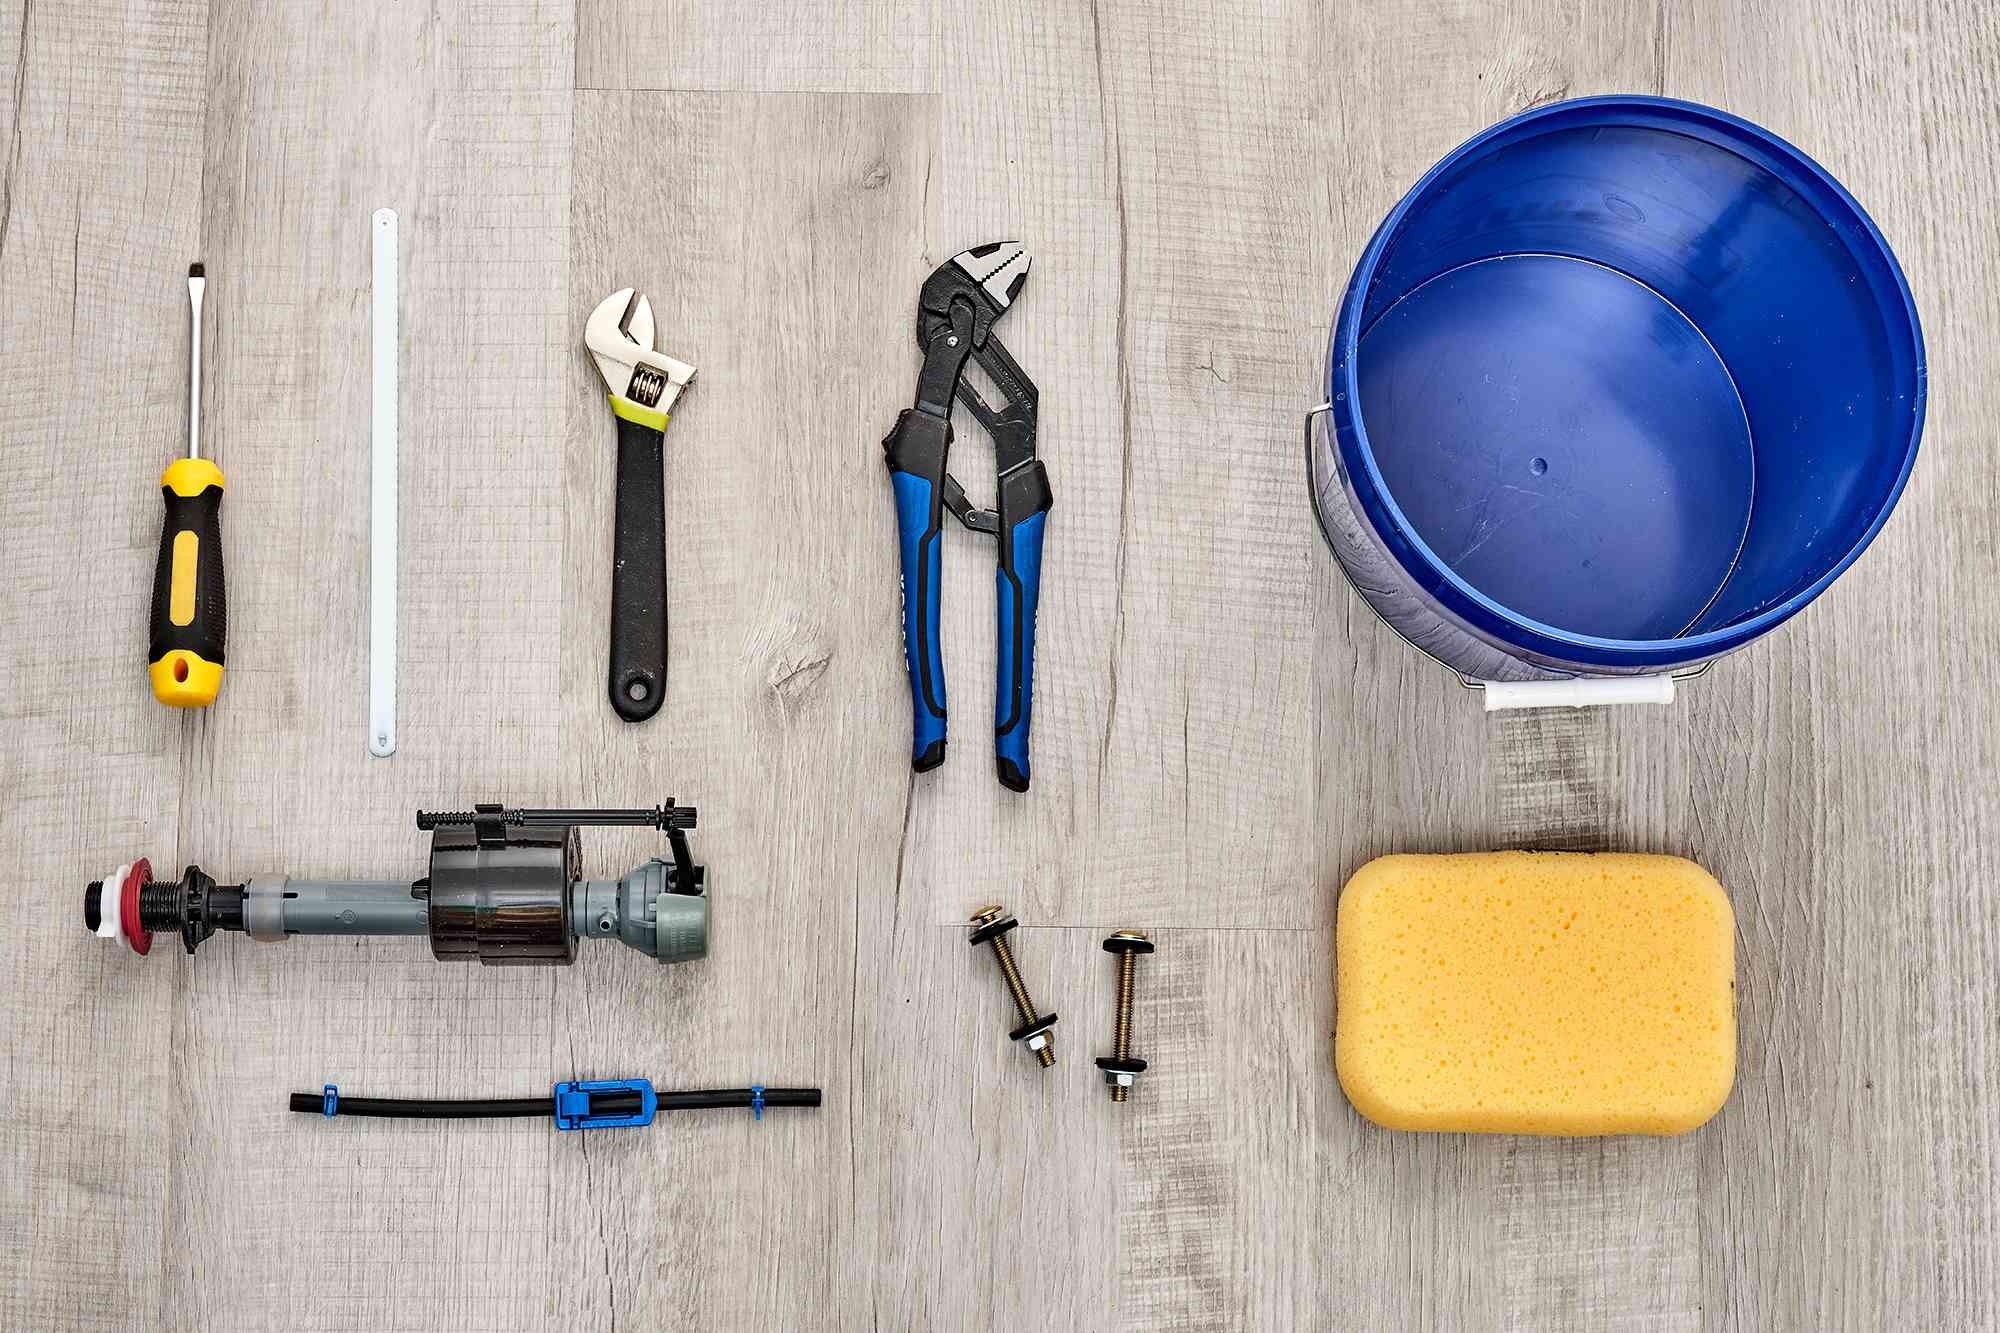 Materials and tools to replace a toilet flush valve